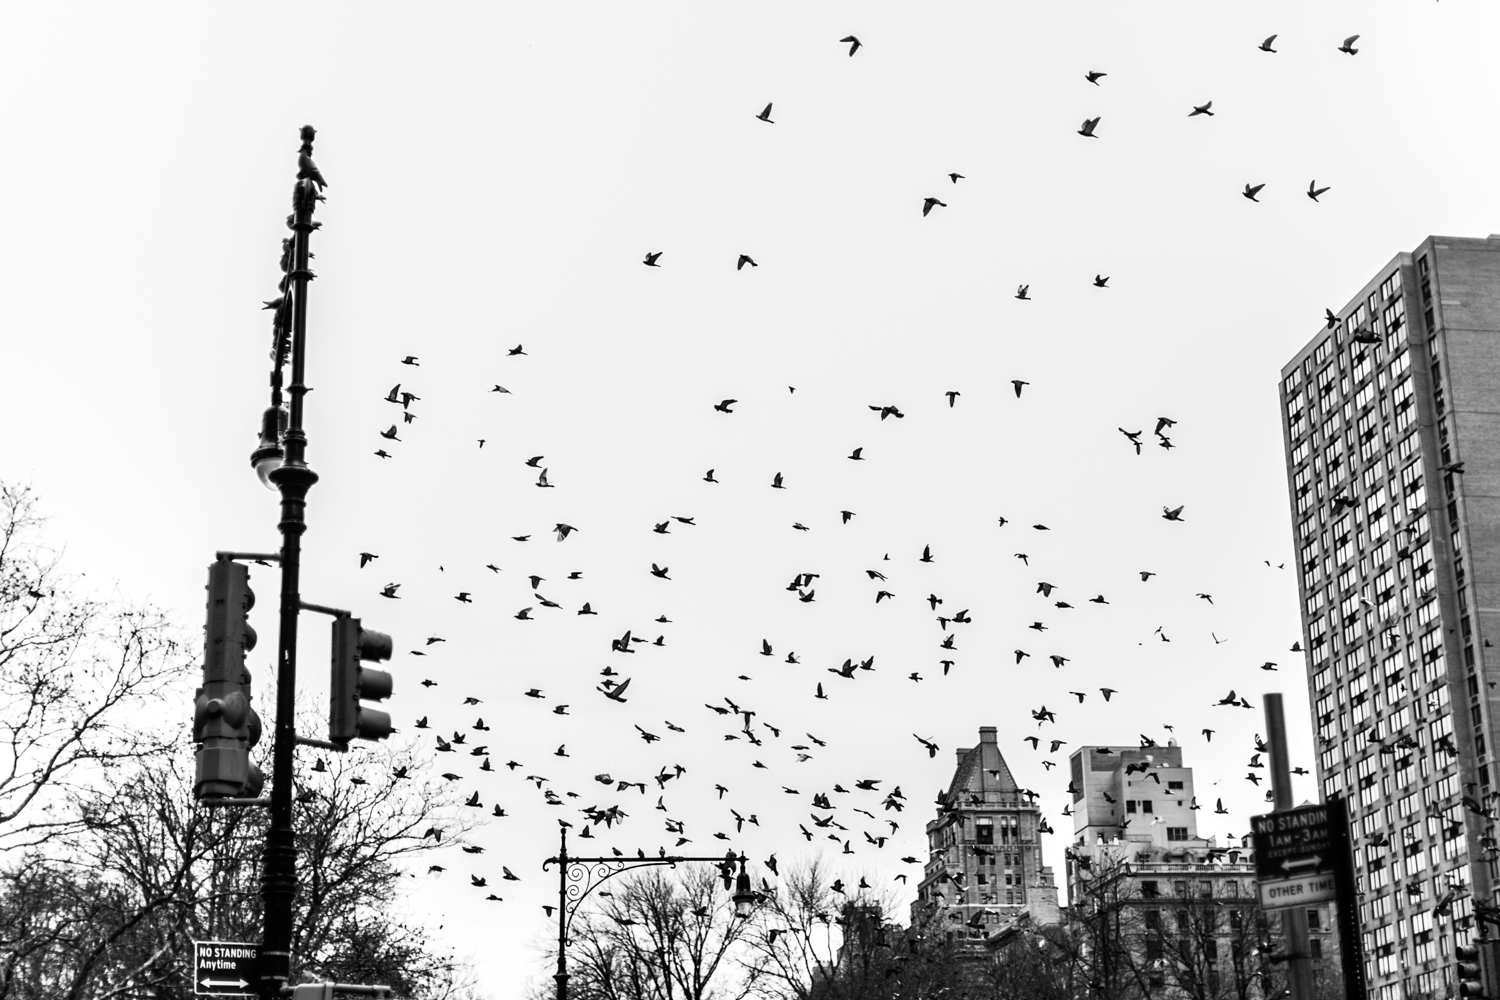 Birds flying around NYC on wedding day